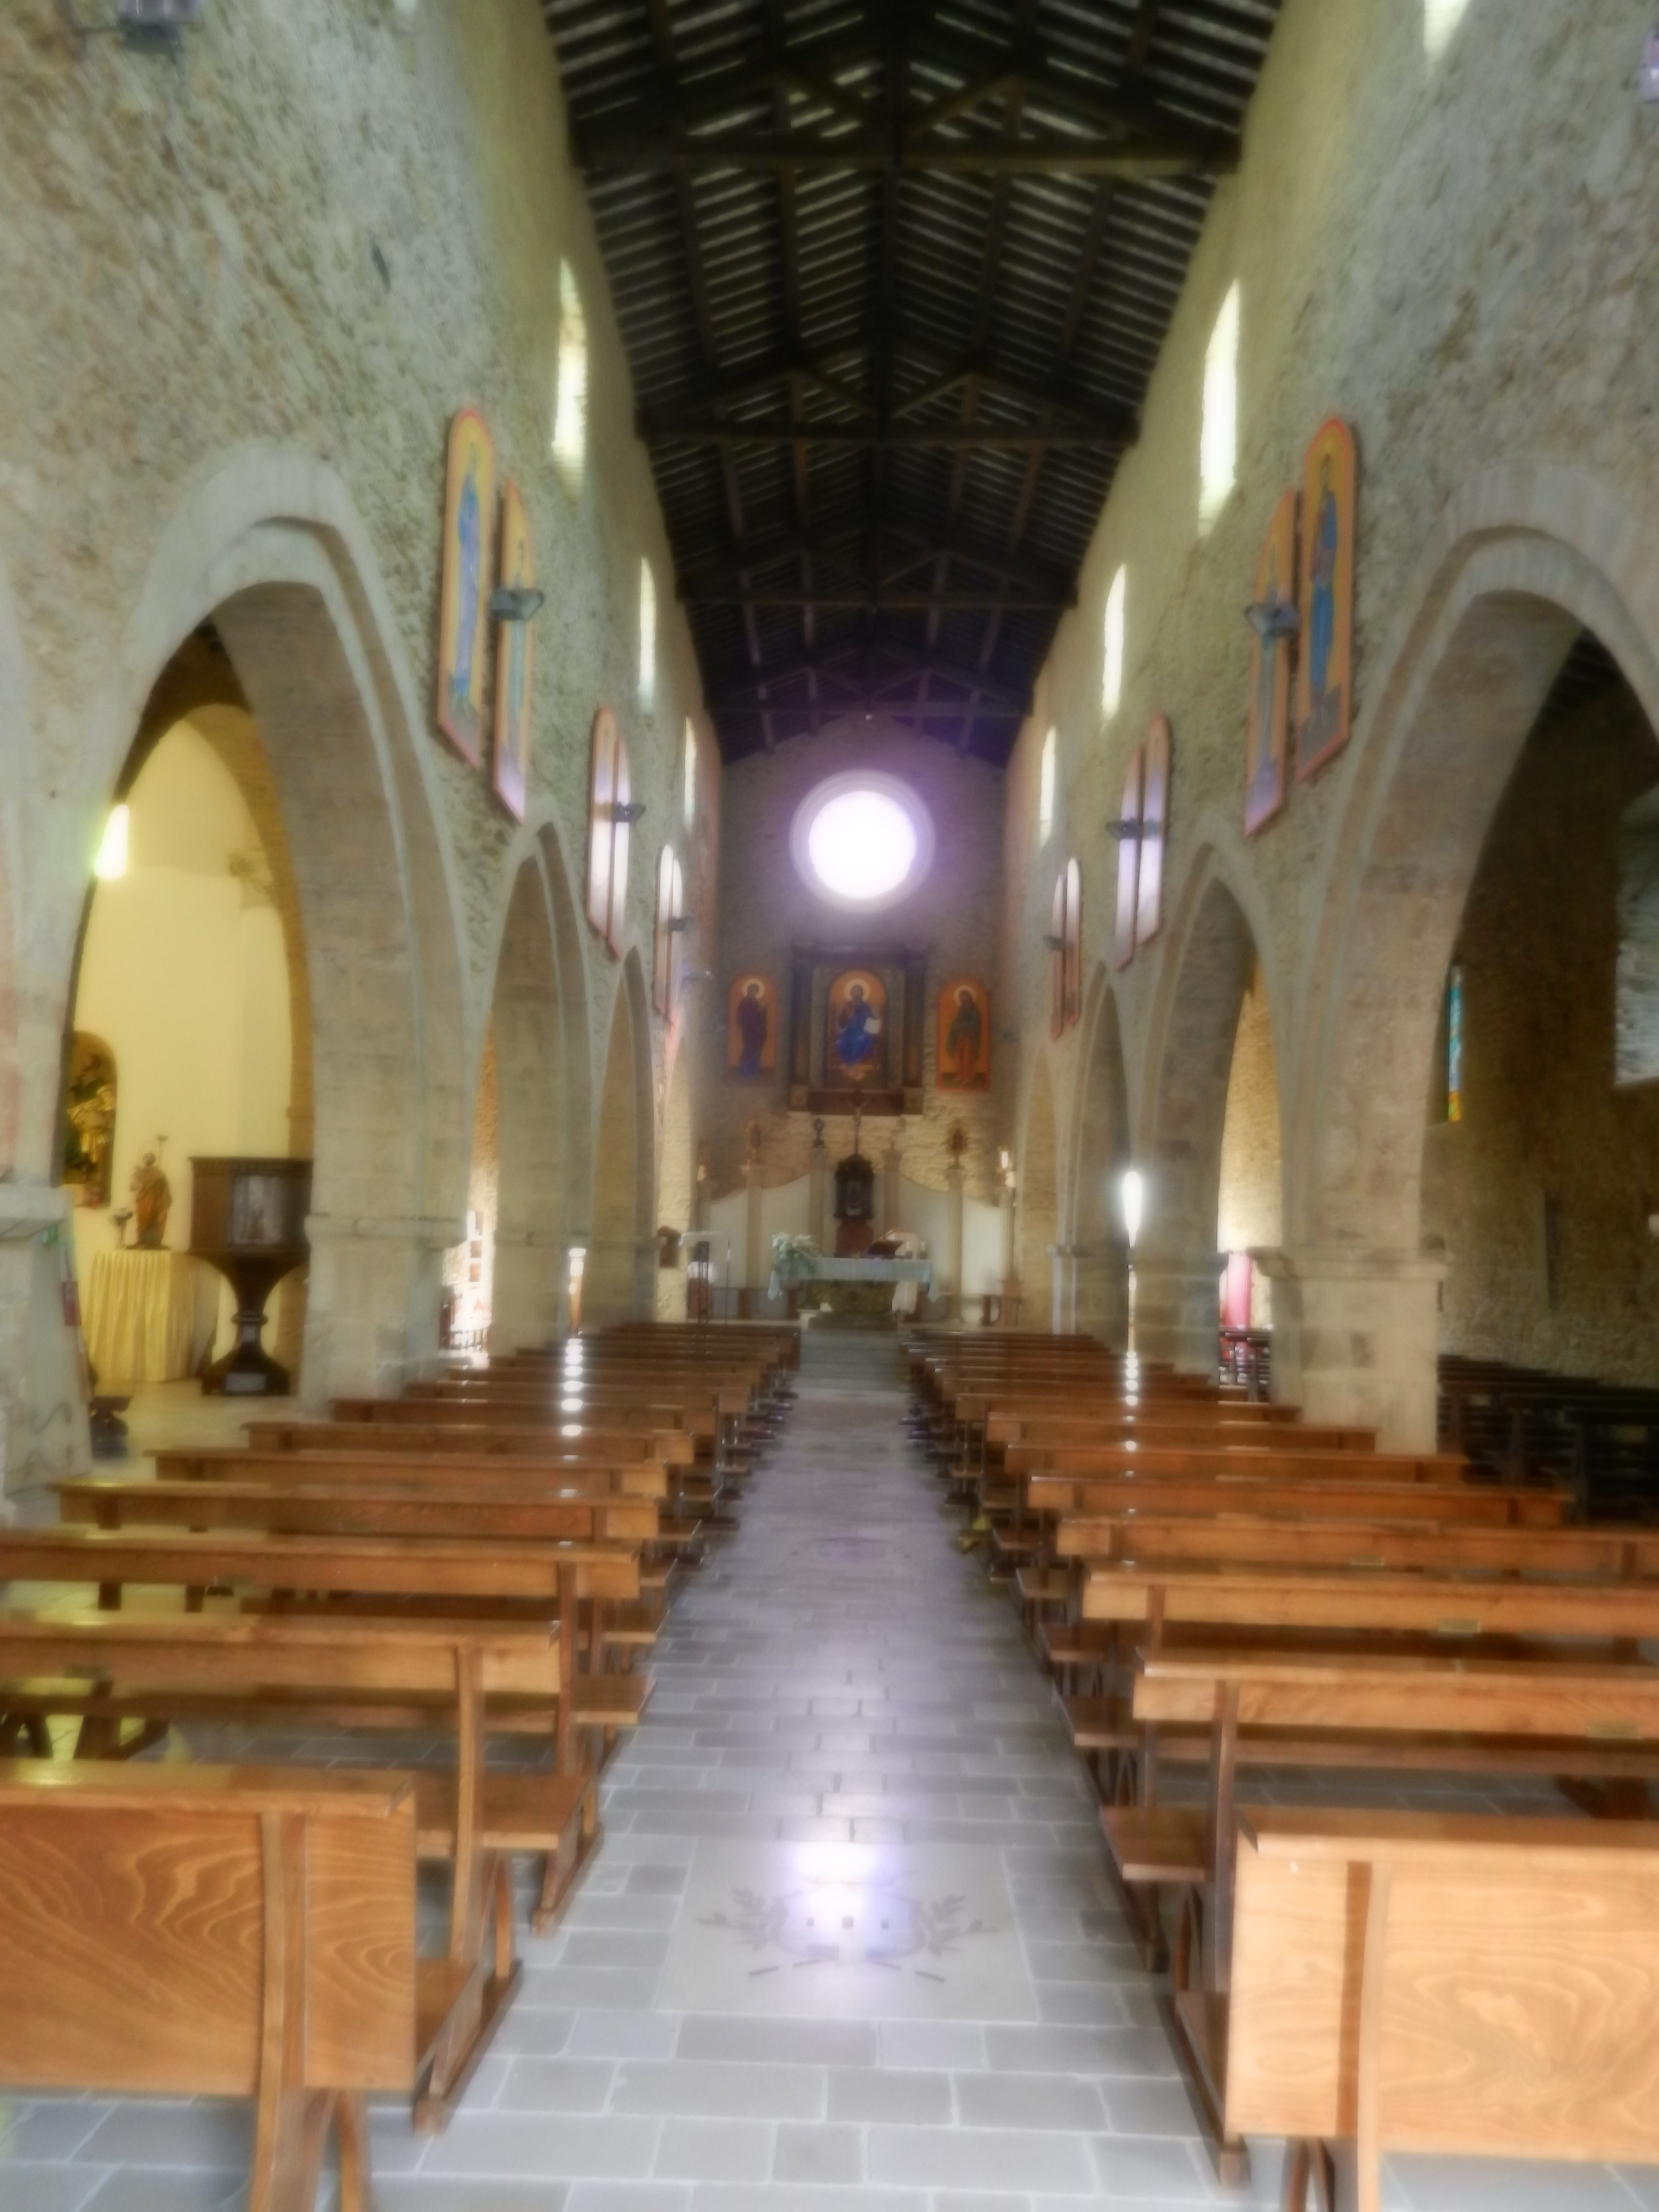 The interior of San Matteo the Apostolo Church in Rocca San Giovanni built in the 12th Century. Generations of Helen's family including her grandparents attended San Matteo.